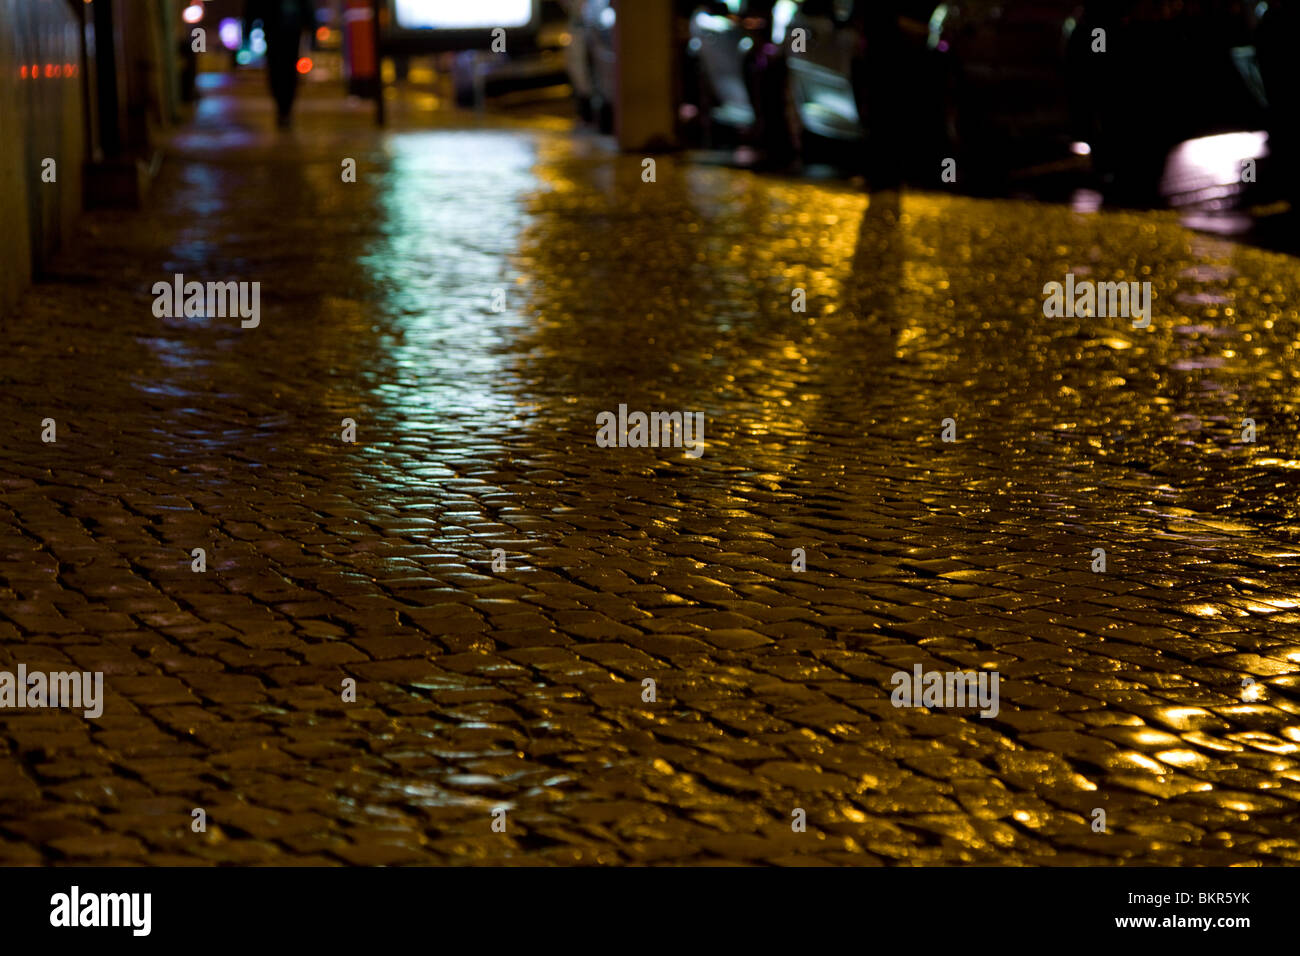 The glistening cobblestone streets in the evening, after a rain. - Stock Image